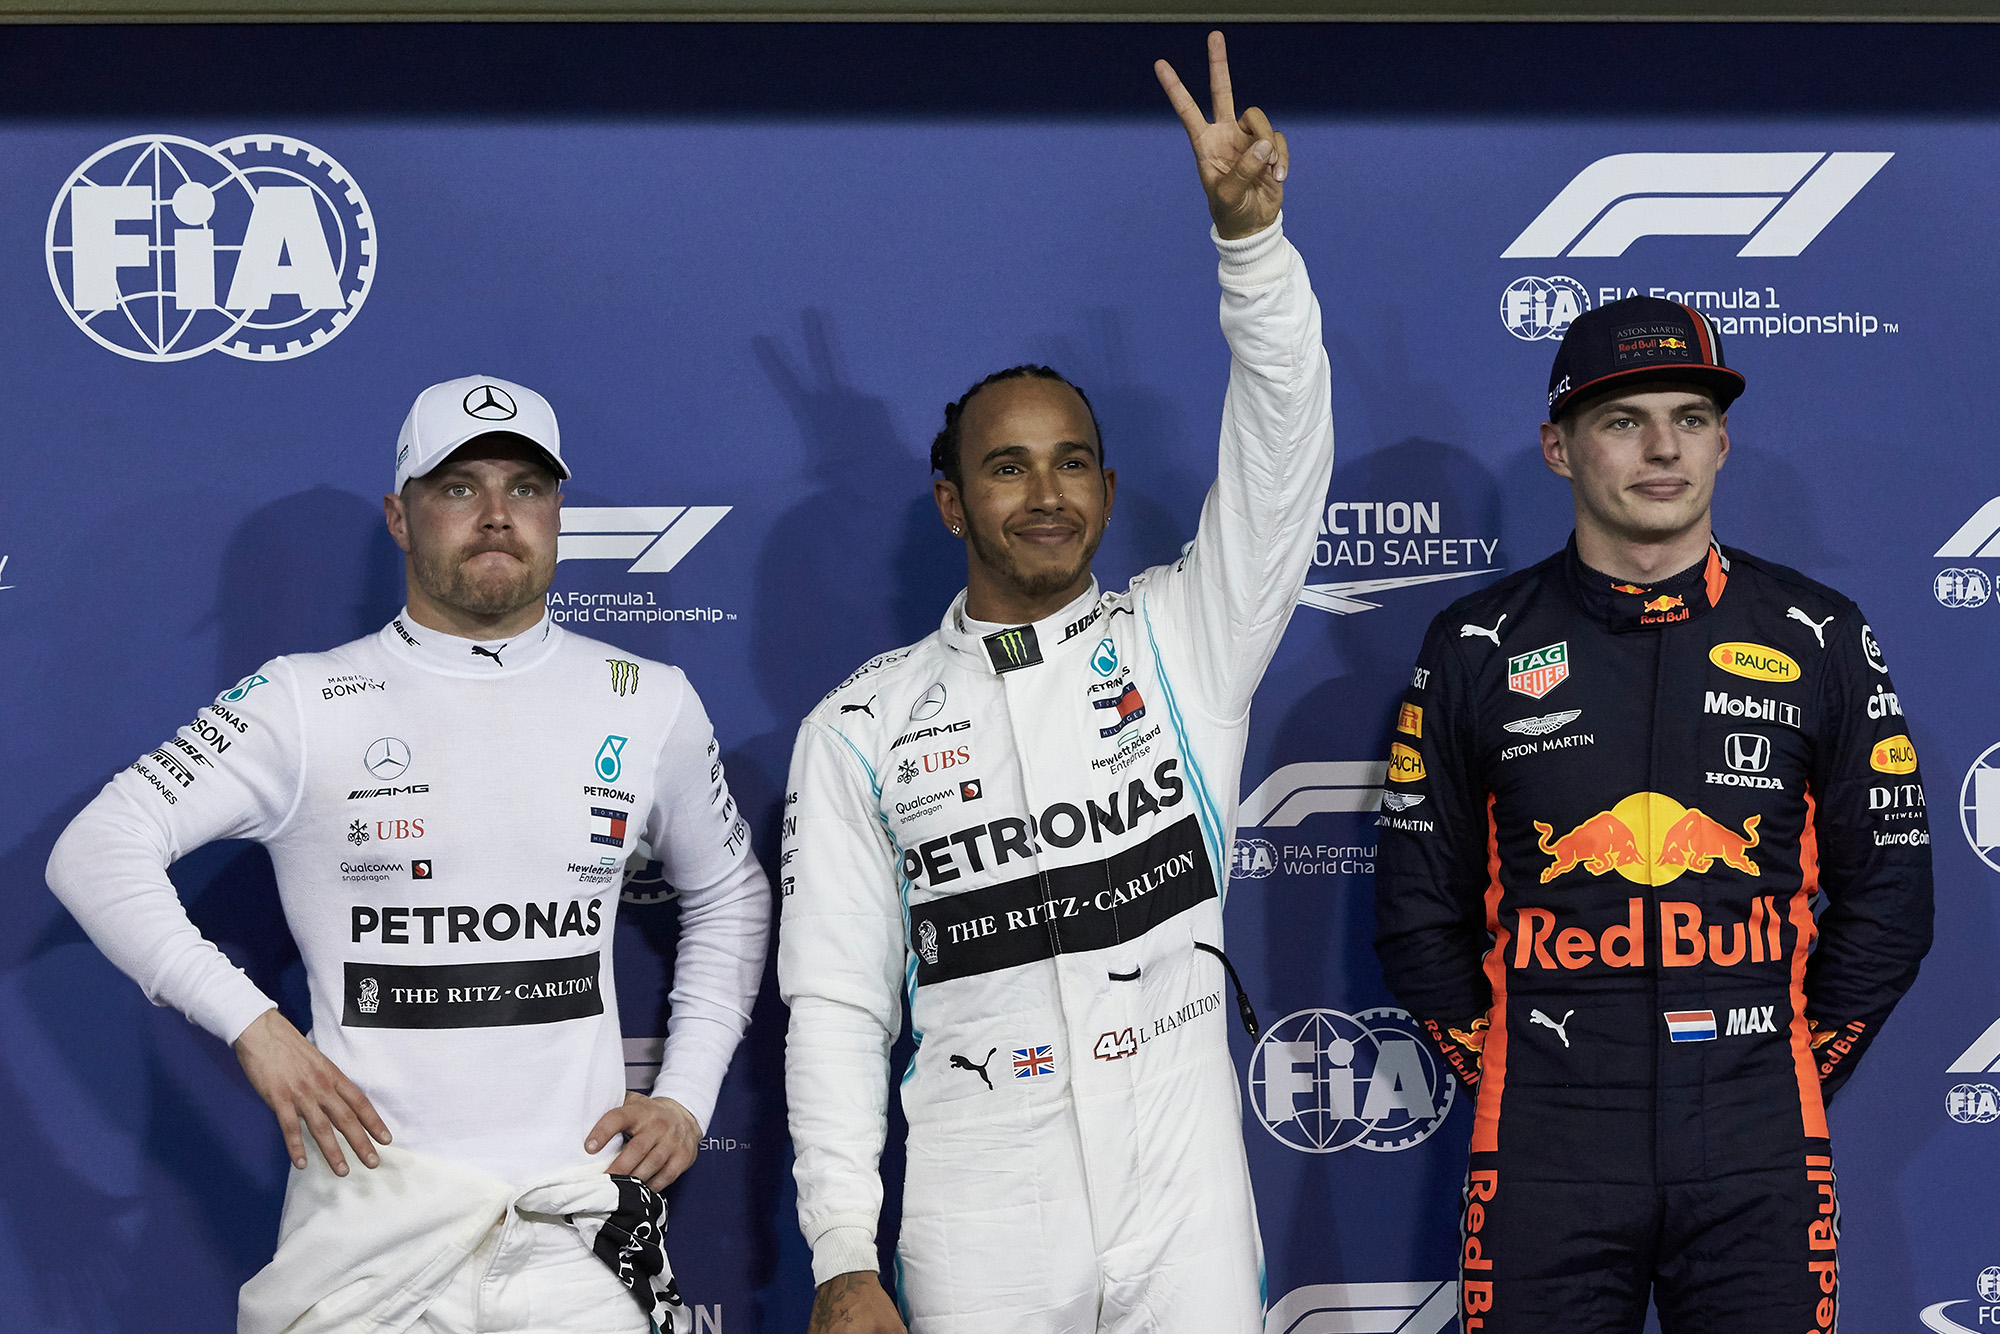 Hamilton, Bottas and Verstappen: top 3 qualifiers at the 2019 F1 Abu Dhabi Grand Prix